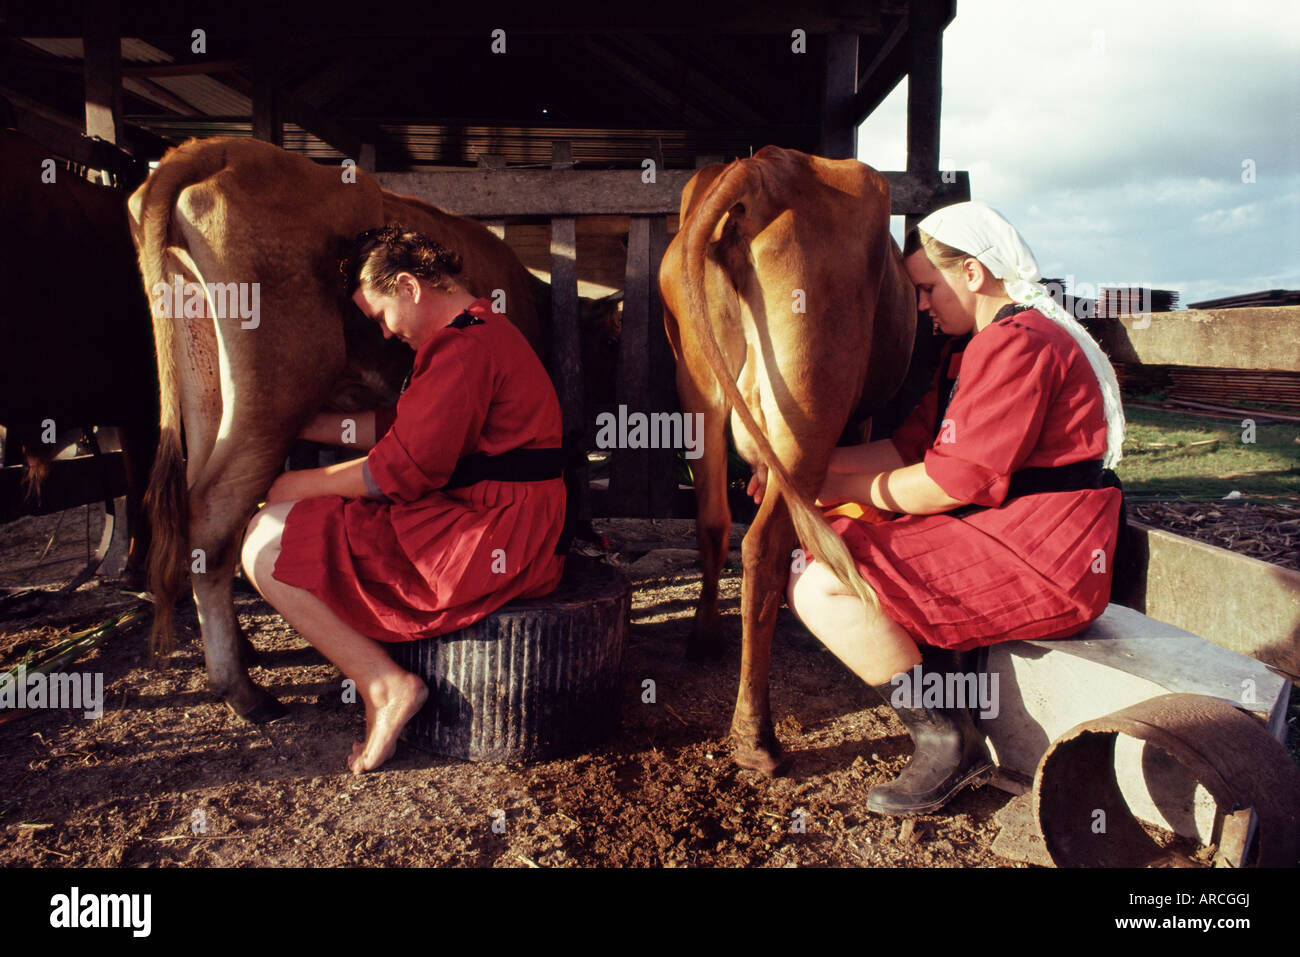 Traditional Mennonite girls miling cows, Camp 9, Shipyard, Belize, Central America - Stock Image